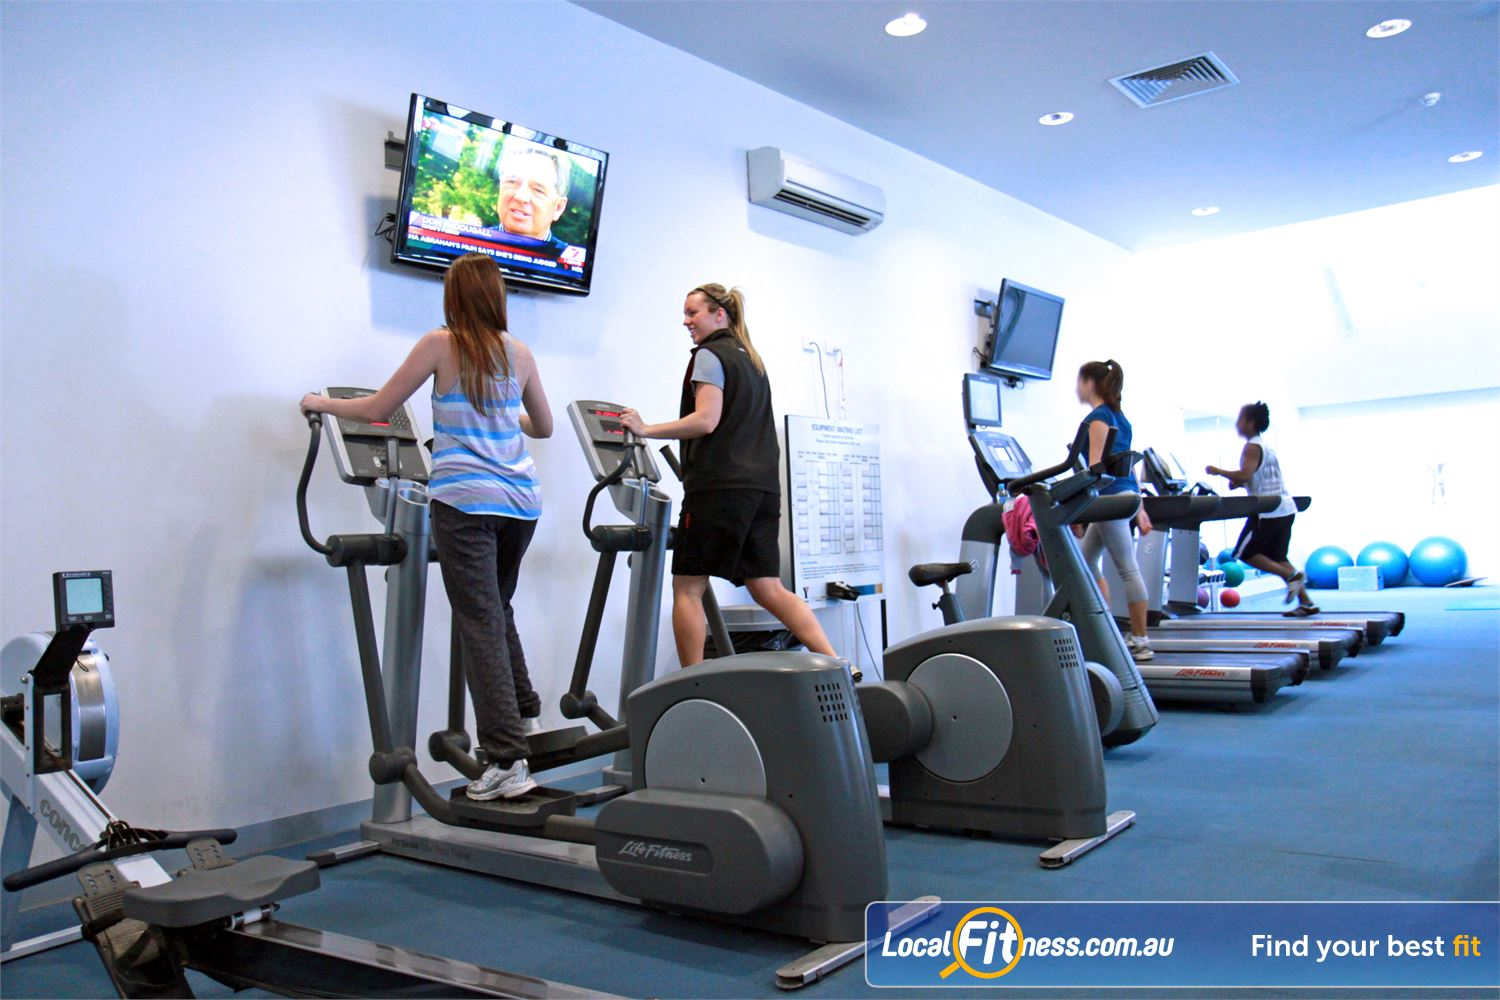 Ascot Vale Leisure Centre Near Aberfeldie A comprehensive range of treadmills, cross trainers, bikes and more.